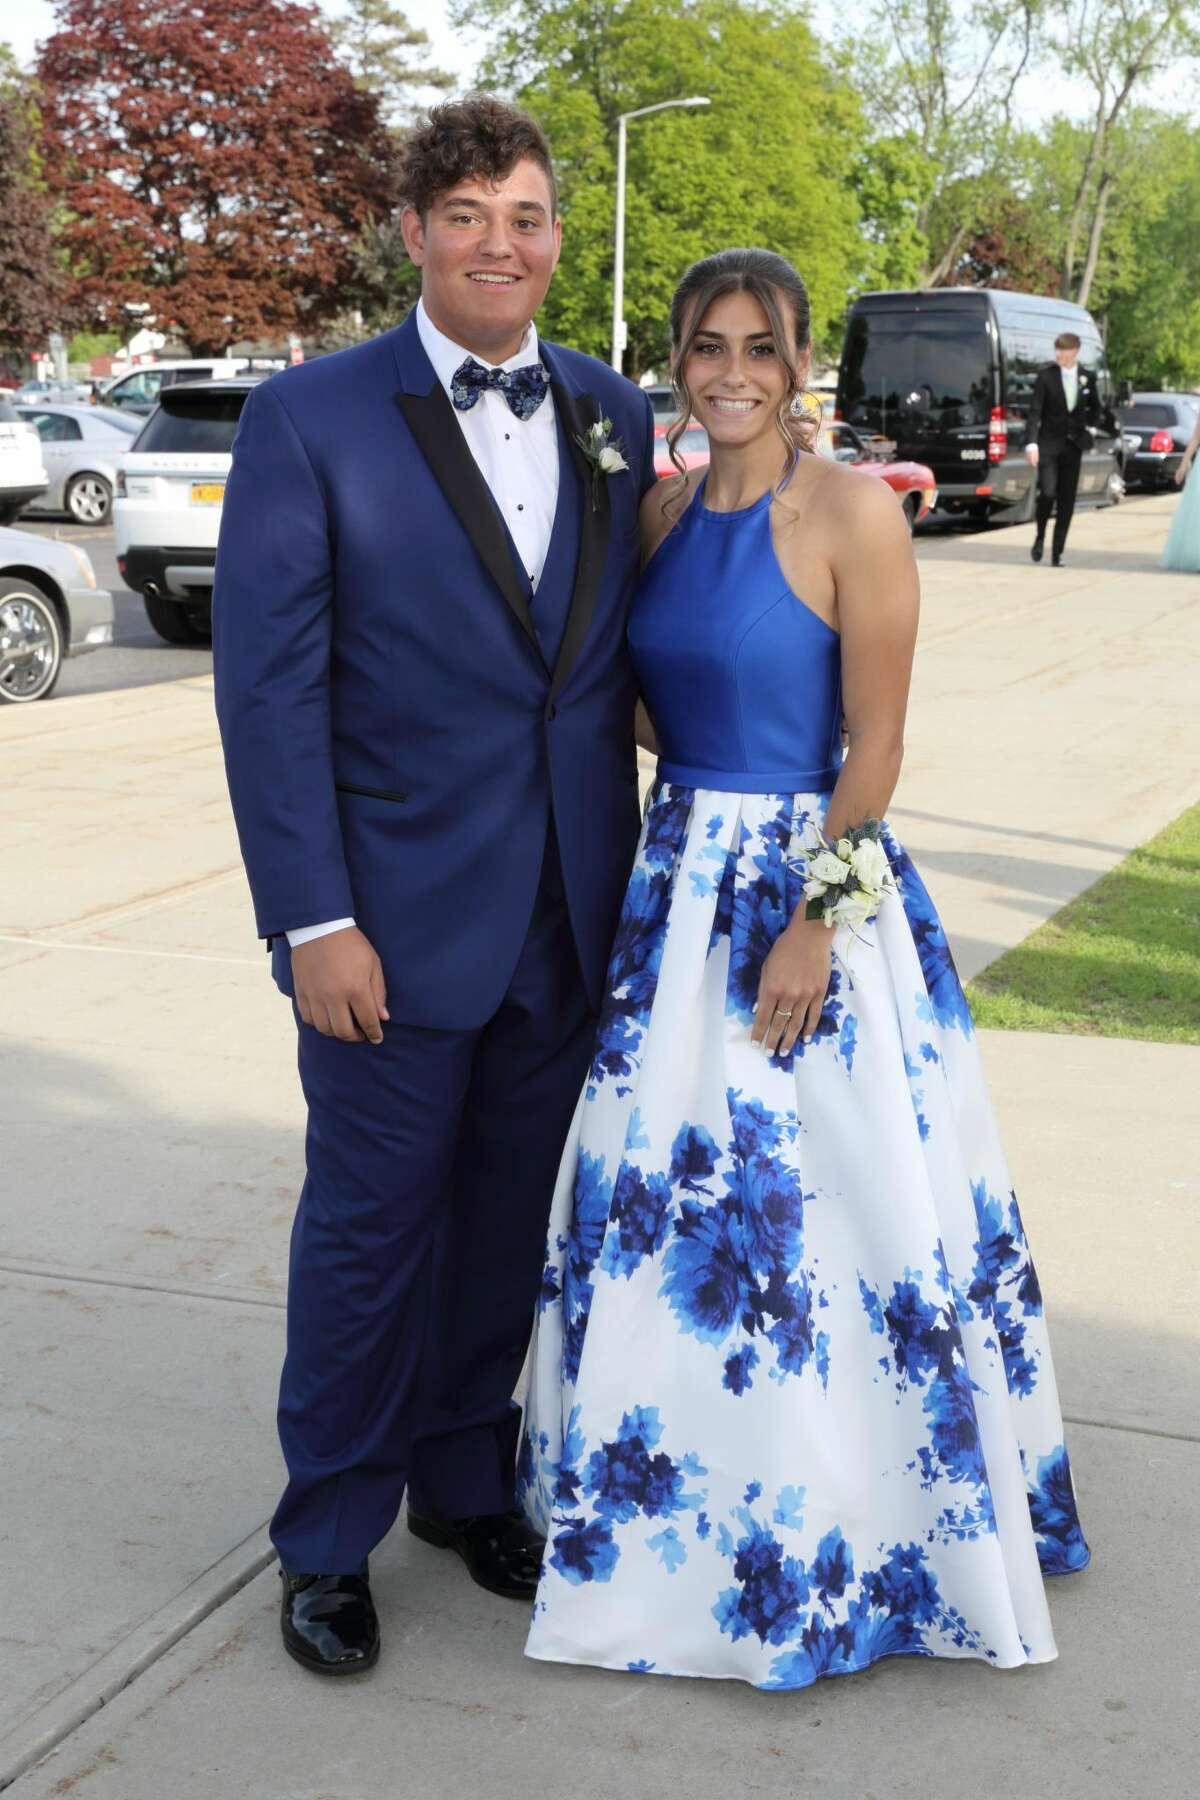 Were you Seen at the Scotia-Glenville Junior-Senior Prom held at The Glen Sanders Mansion in Scotia on Friday, May 18, 2018?